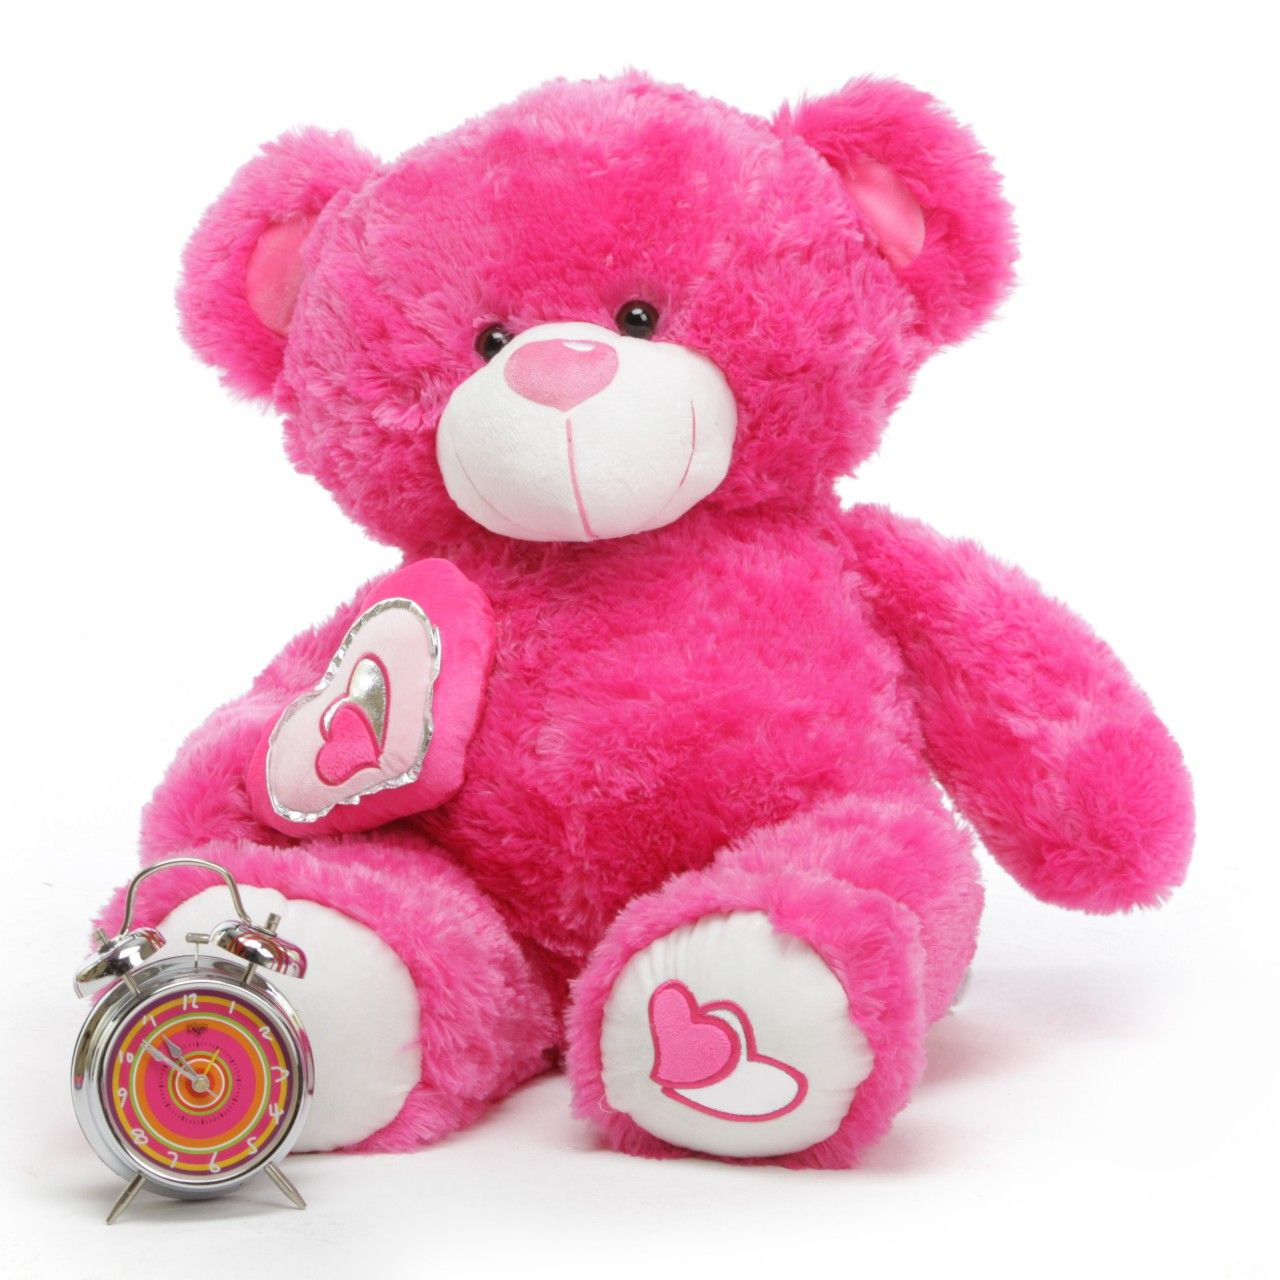 Teddy bear pink really cute i think my teddy bear page teddy bear bears chacha big love hot pink valentine giant wallpapers resolution filesize kb added on august tagged teddy bear bears voltagebd Image collections